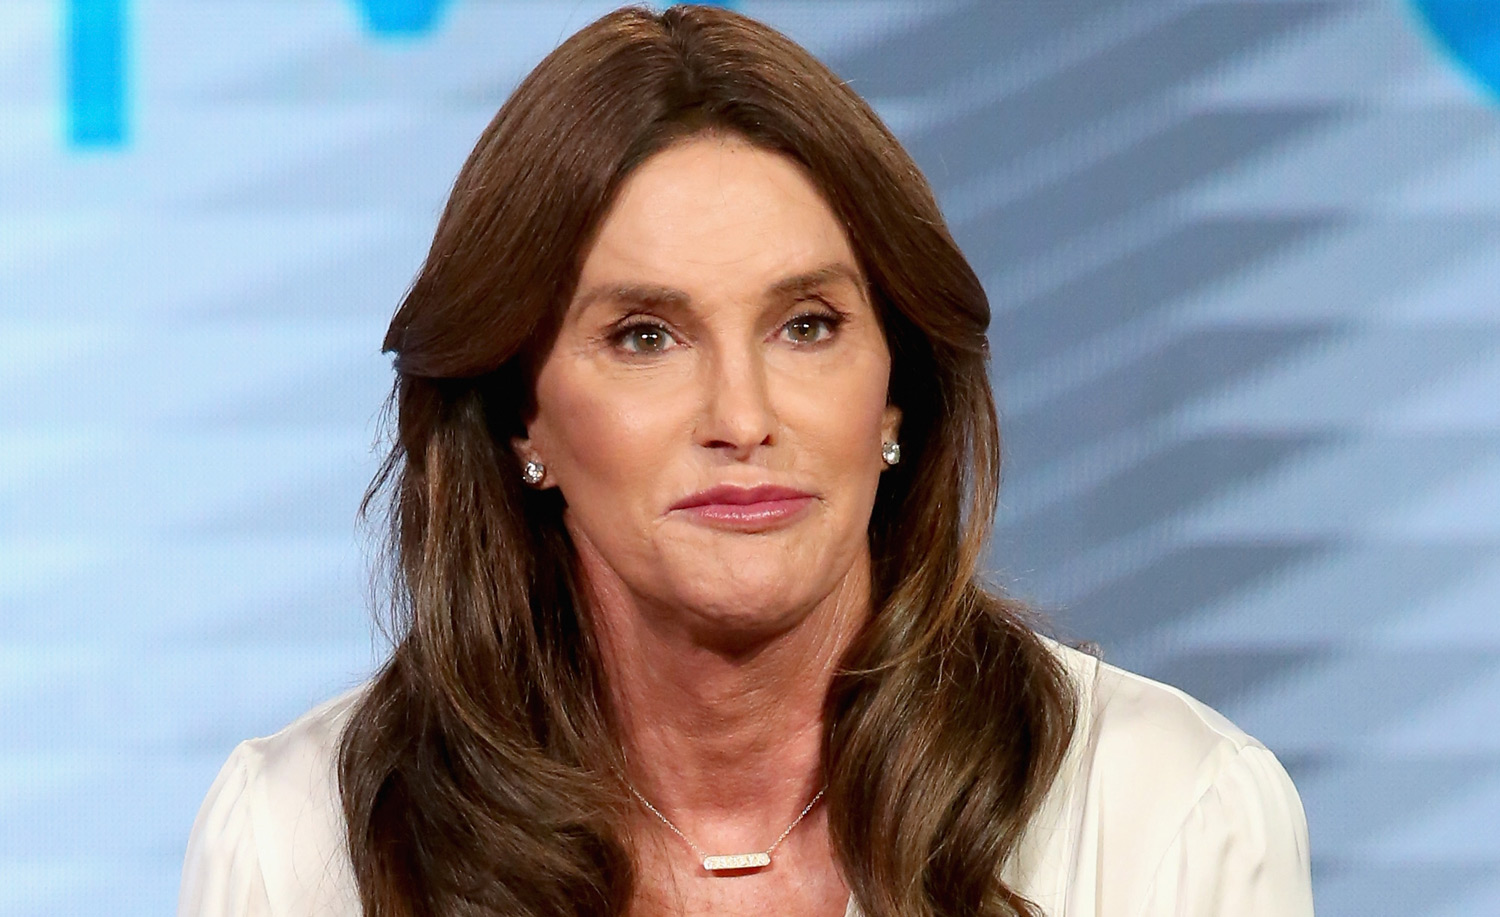 catlin gay singles Caitlyn jenner on dating men: 'it would be nice to kind of share your life' | today category news & politics show more show less loading.